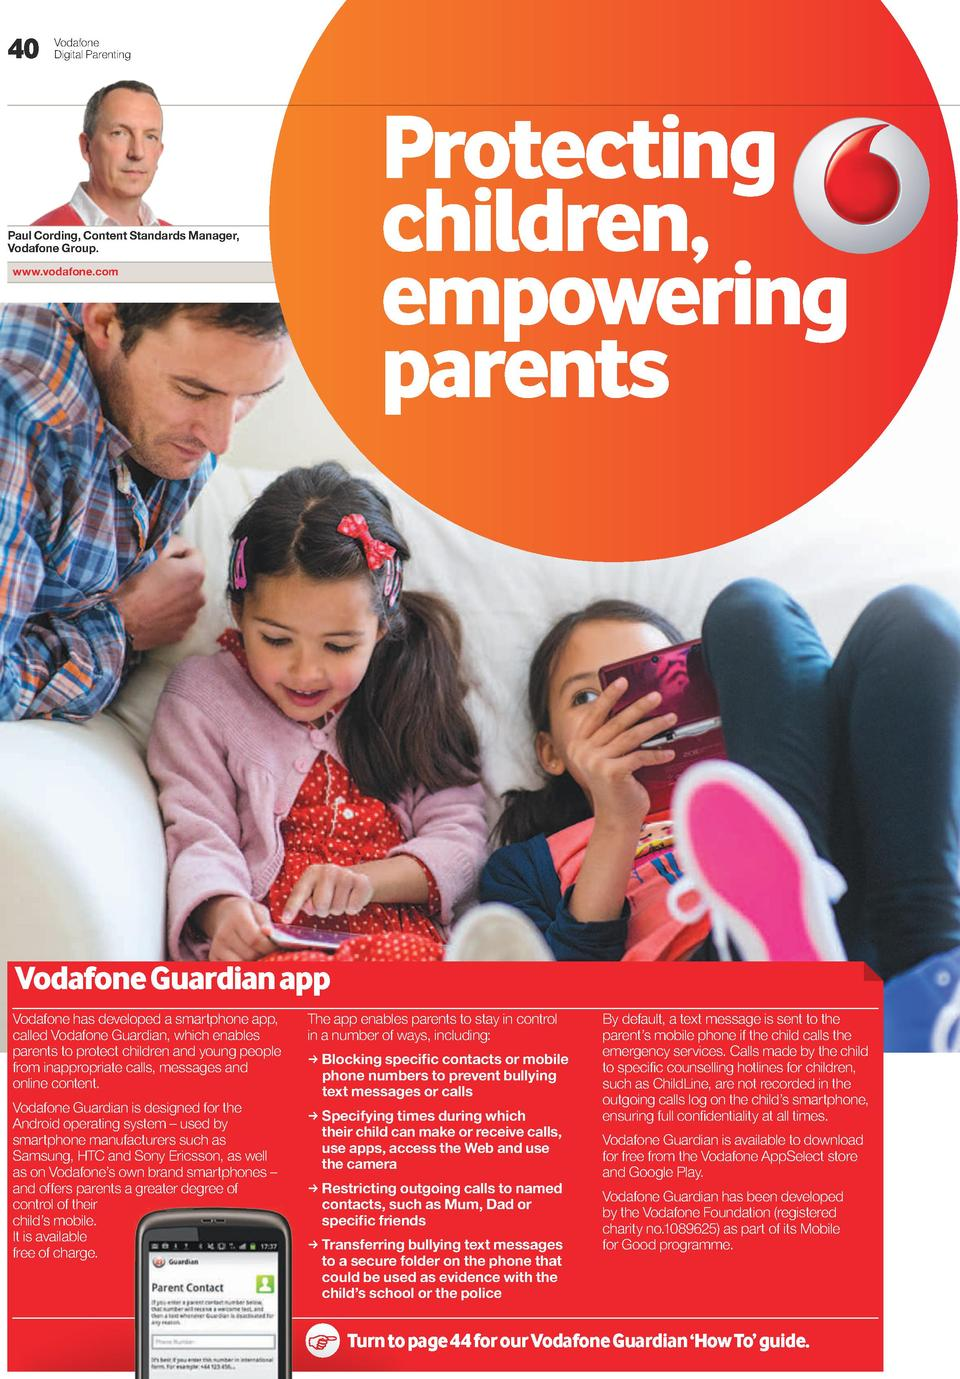 40  Vodafone Digital Parenting  Protecting children, empowering parents  Paul Cording, Content Standards Manager, Vodafone...